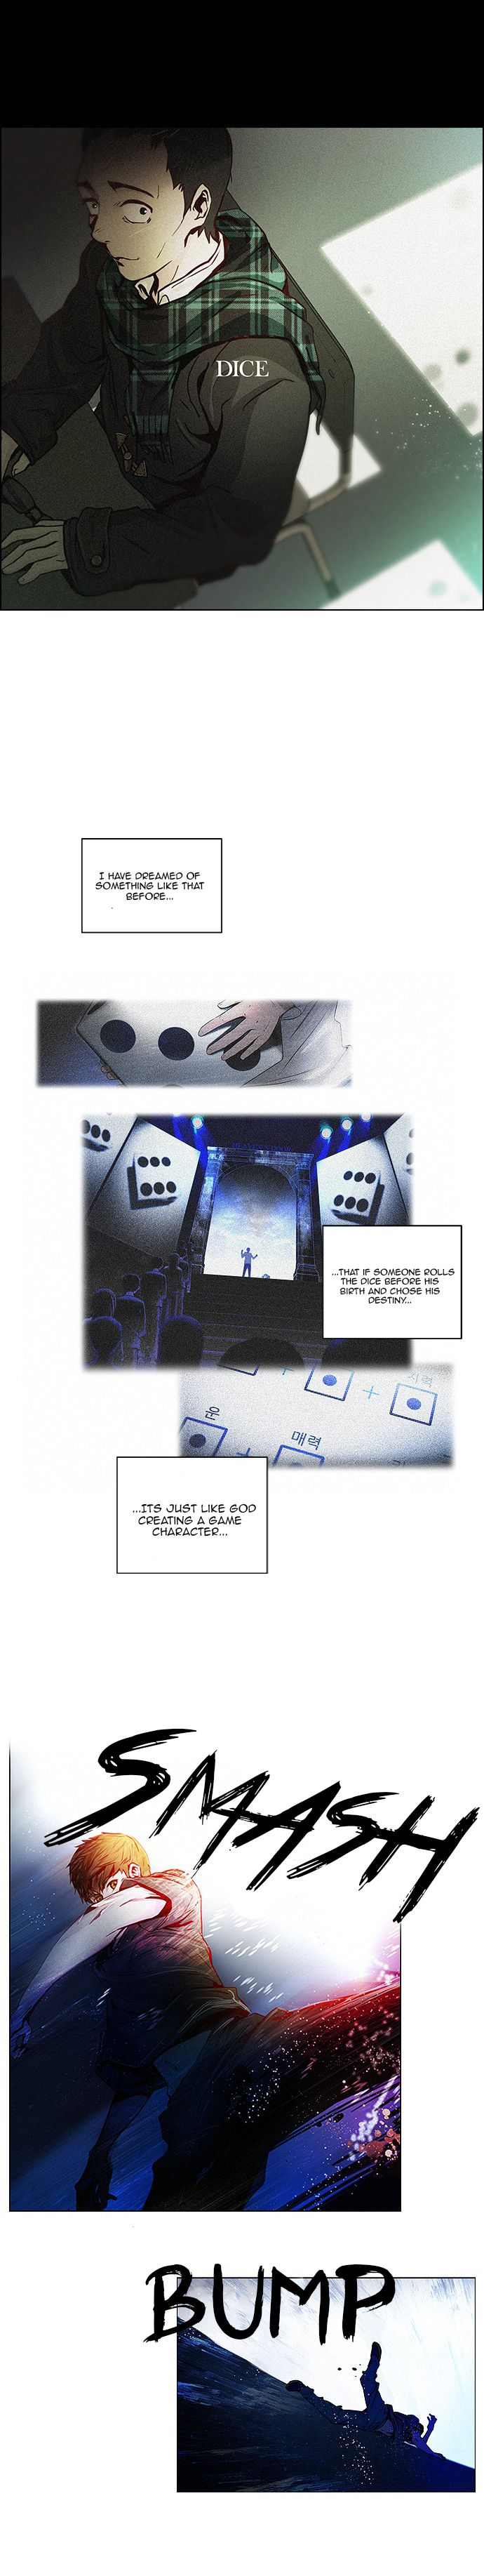 DICE: the cube that changes everything 15 Page 1